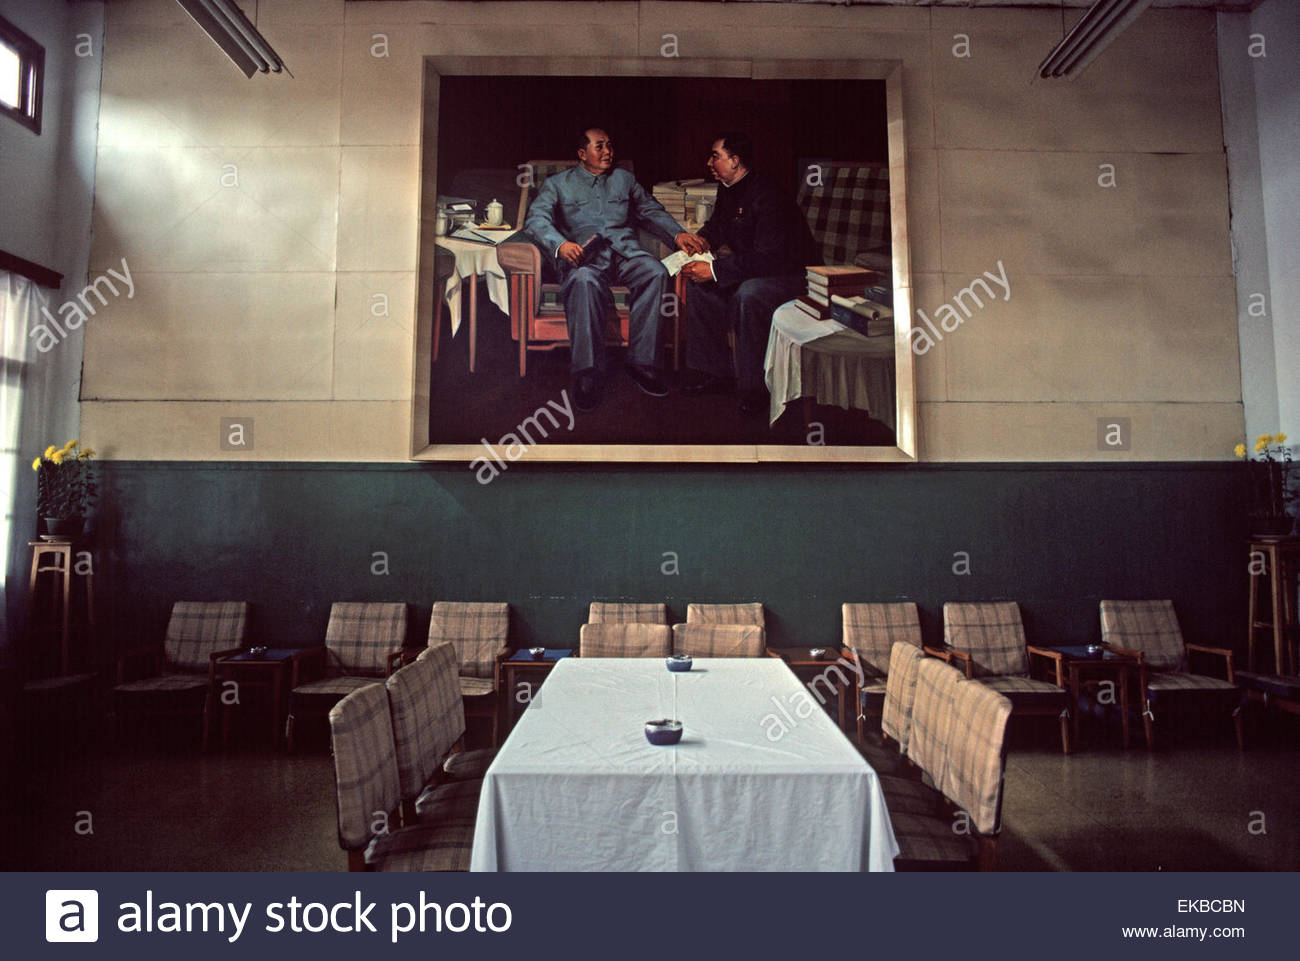 Portraits of Chairman Mao and Premier Zhou Enlai in Committee room of Huang-Chiao commune, near Shanghai, China - Stock Image